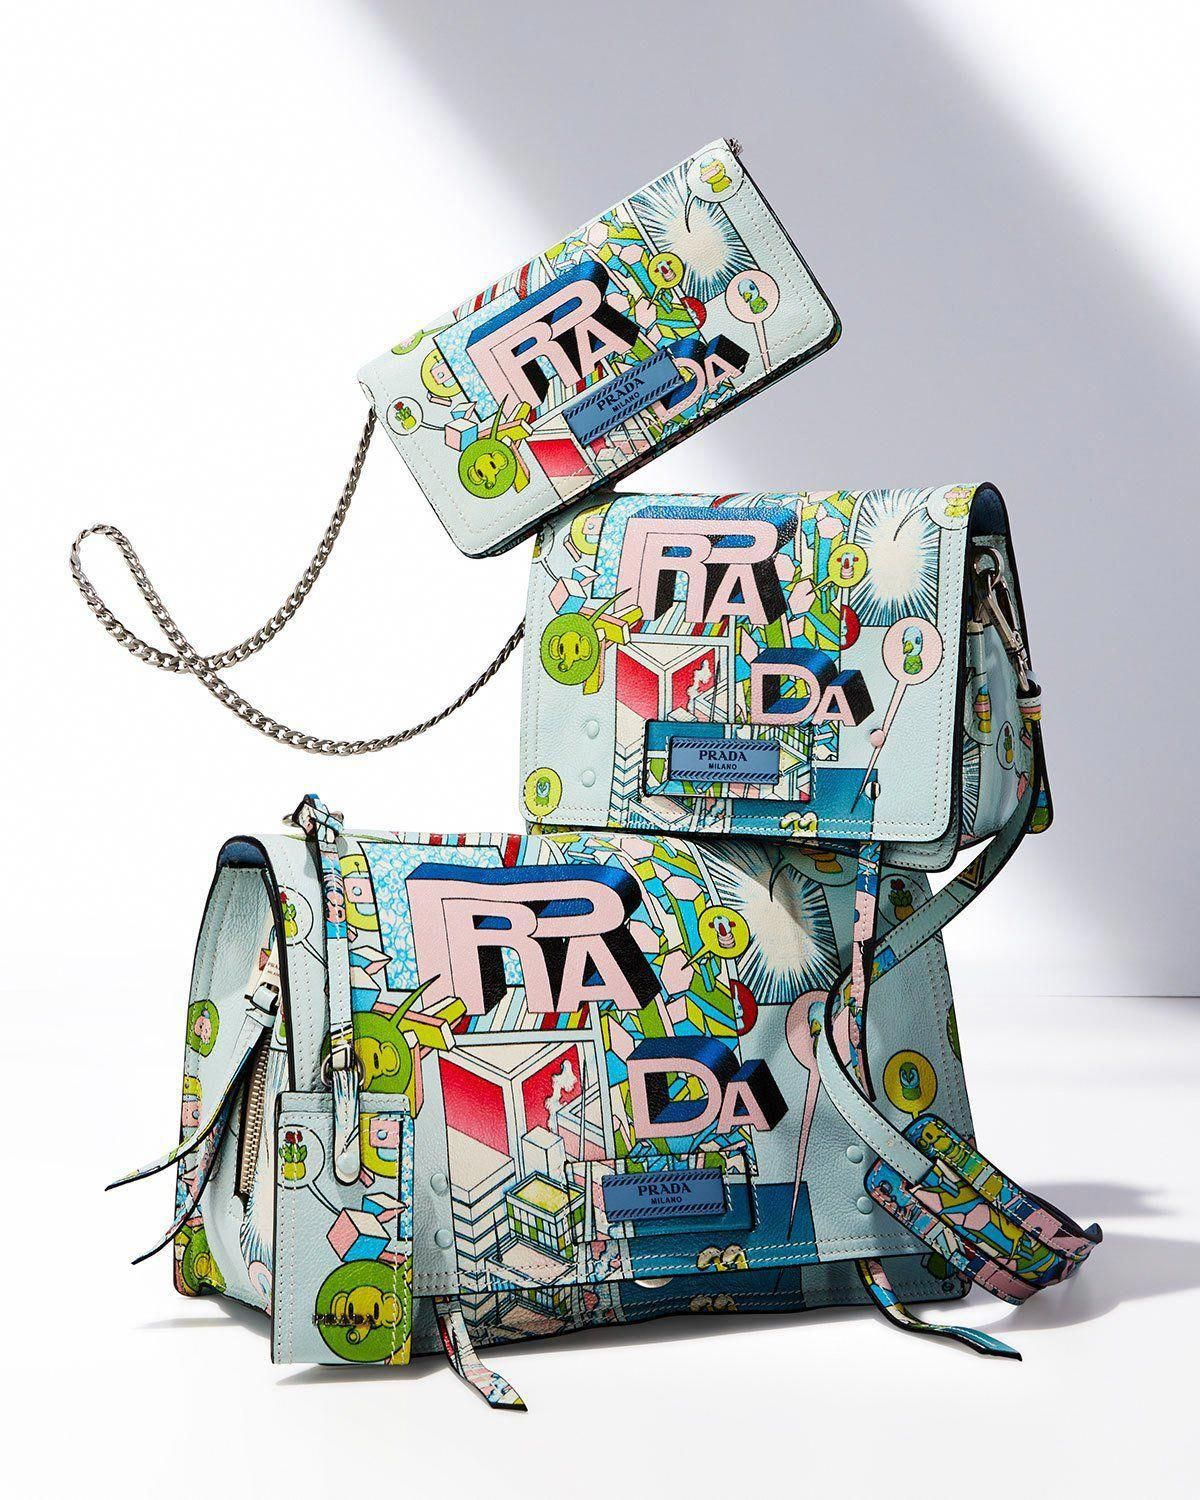 8d419a22bf496d Get free shipping on Prada Etiquette Small Comic Print Shoulder Bag at  Neiman Marcus. Shop the latest luxury fashions from top designers.  #Pradahandbags